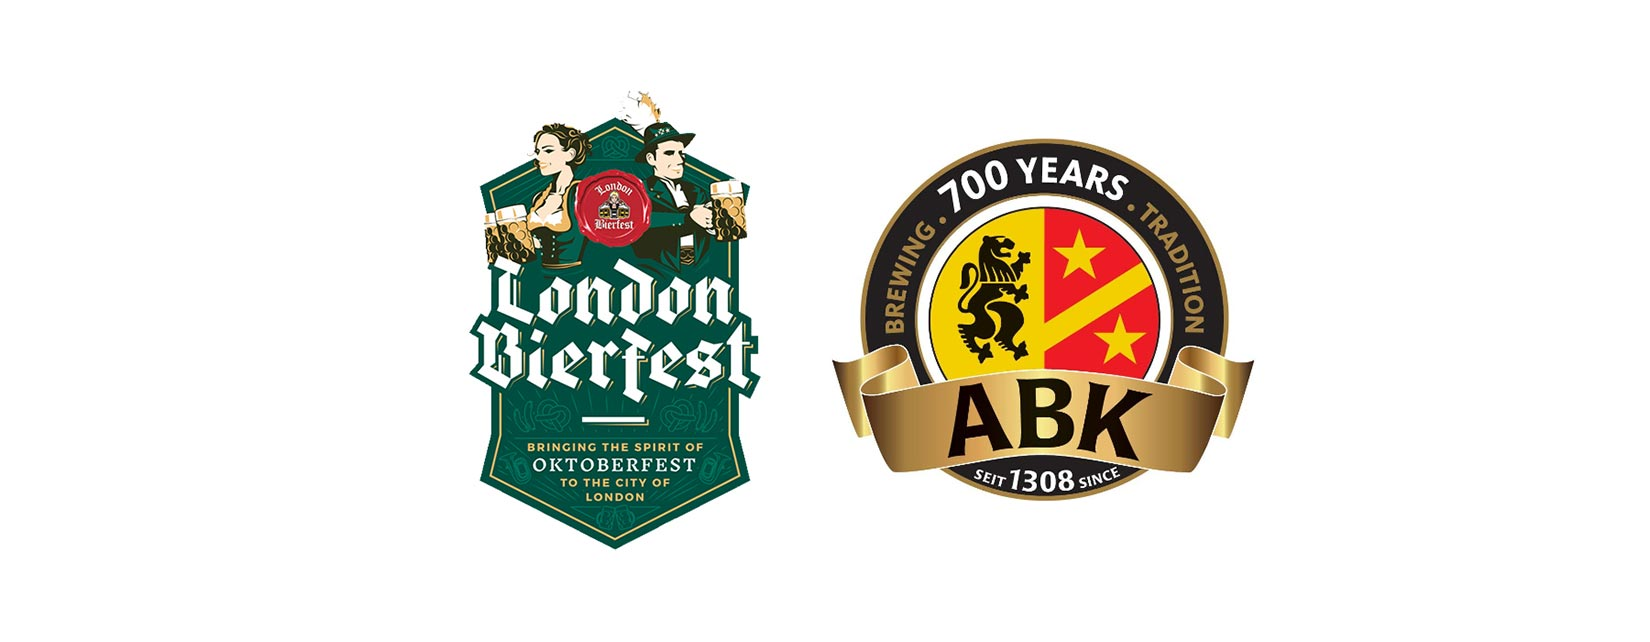 The London Bierfest Returns With New Official Beer Supplier Abk Beer